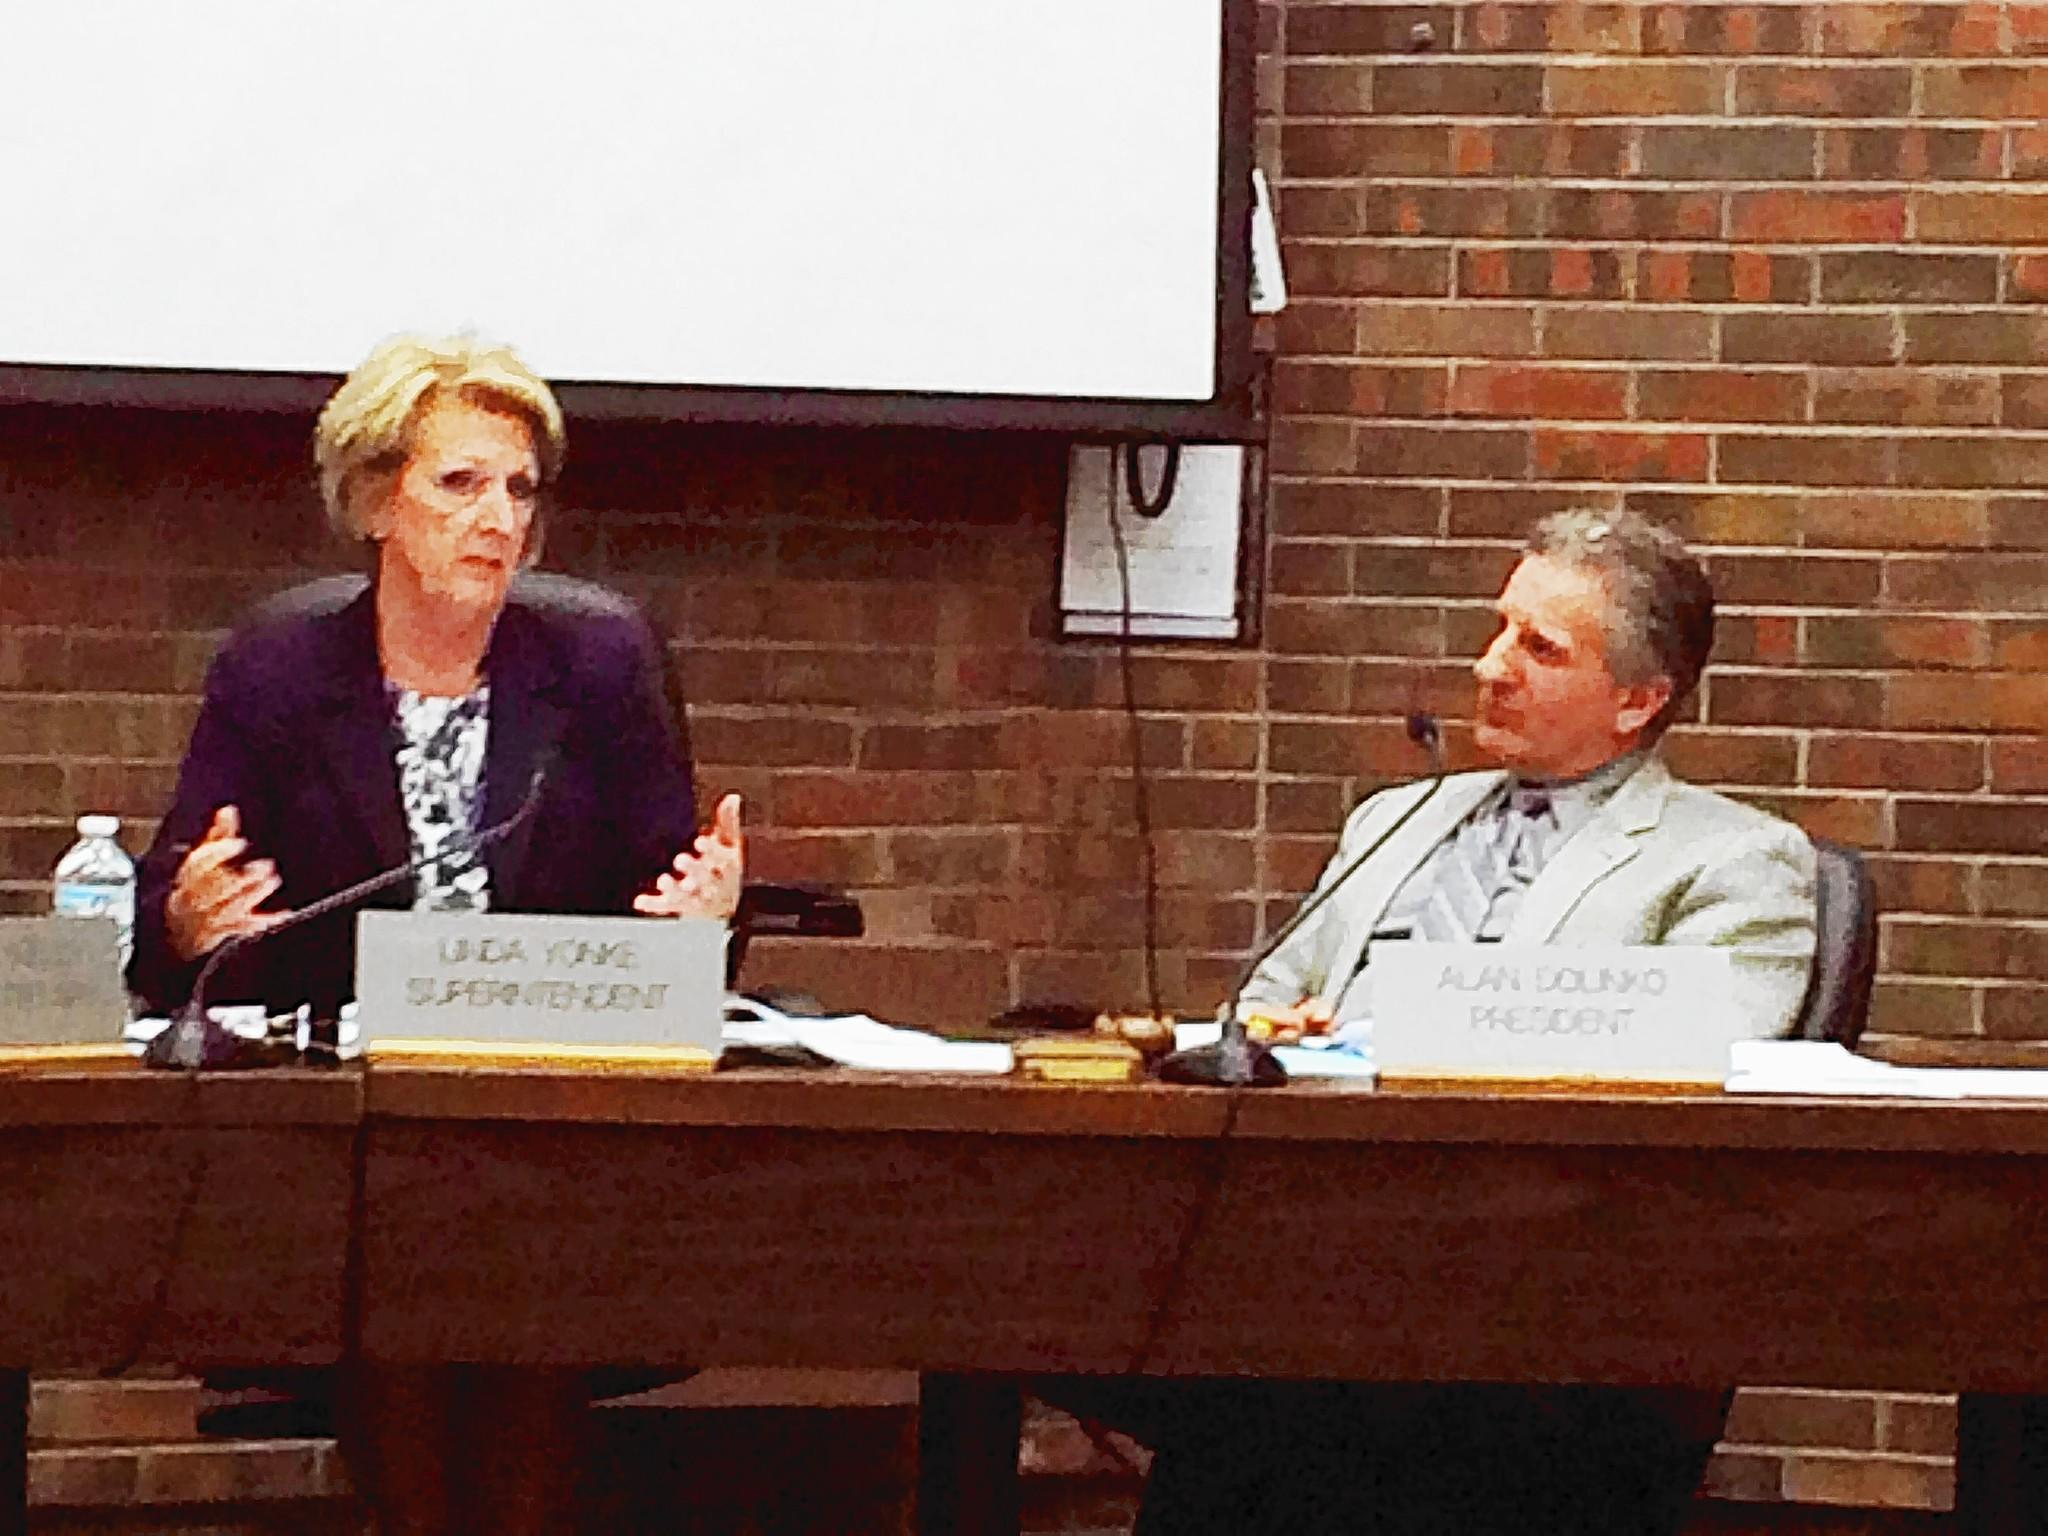 New Trier Township High School District 203 Superintendent Linda Yonke and board of education president Alan Dolinko at a meeting on April 28 discussed the potential impact of a proposed $89 million referendum on local residential property taxes.